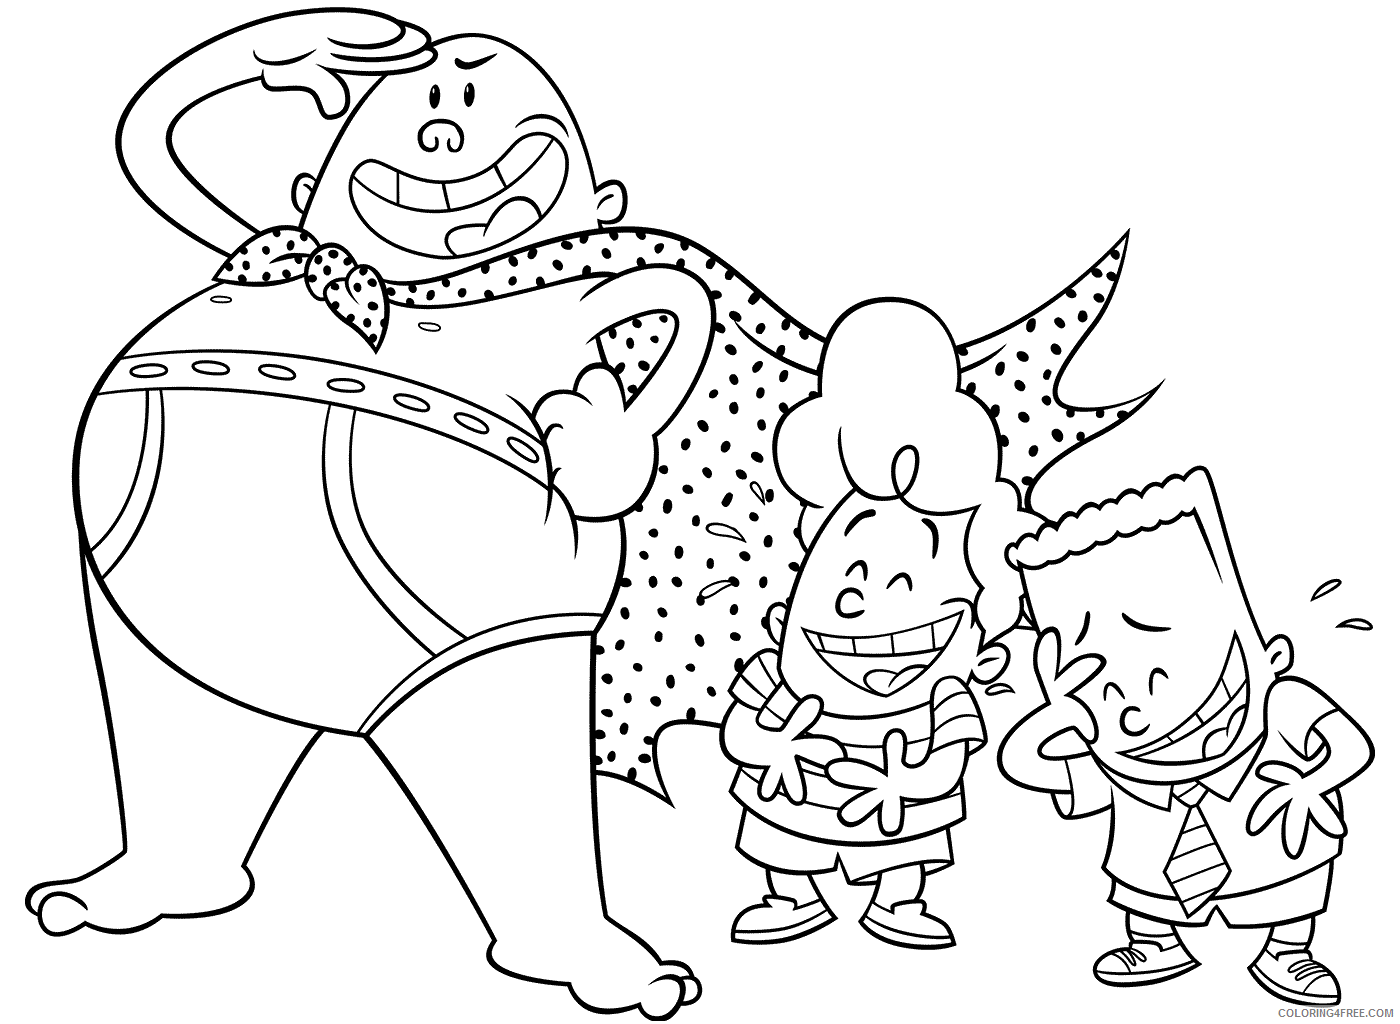 The Epic Tales of Captain Underpants Coloring Pages TV Film Printable 2020 08676 Coloring4free